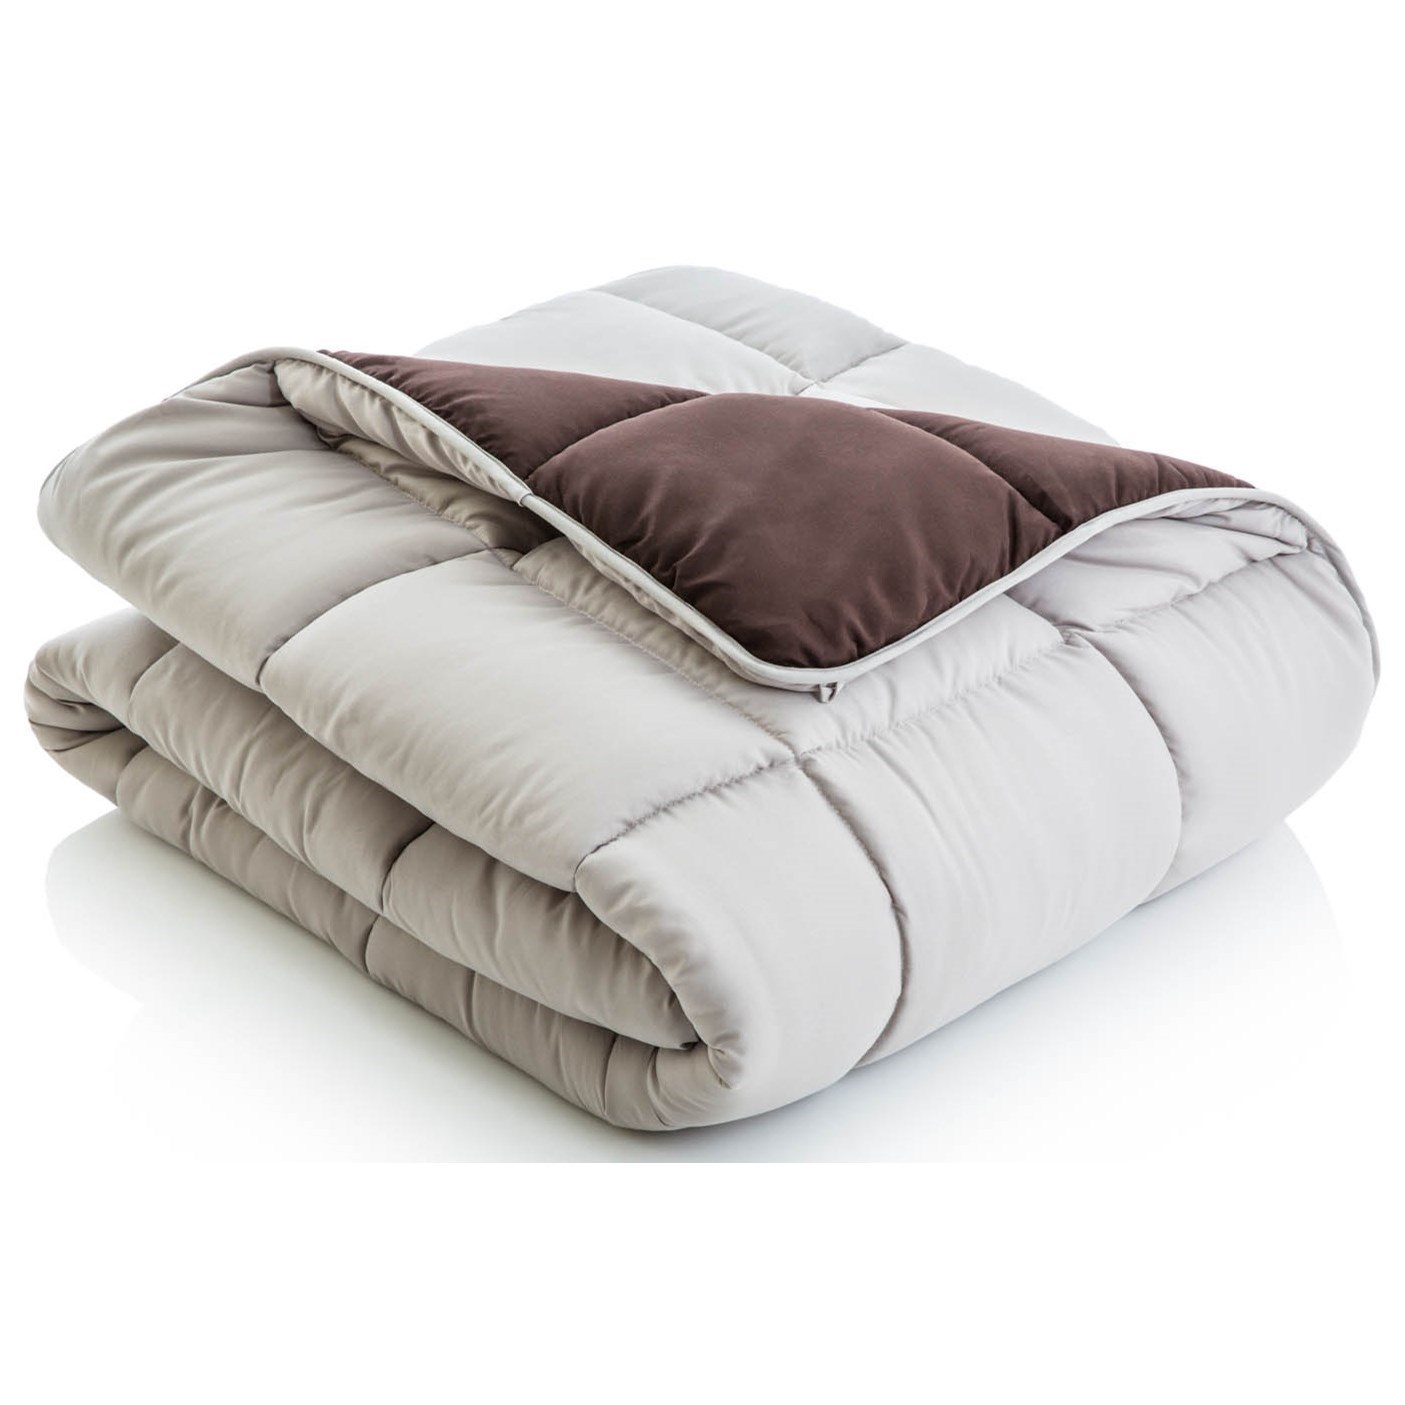 Reversible Bed in a Bag Full Reversible Bed in a Bag by Malouf at Prime Brothers Furniture